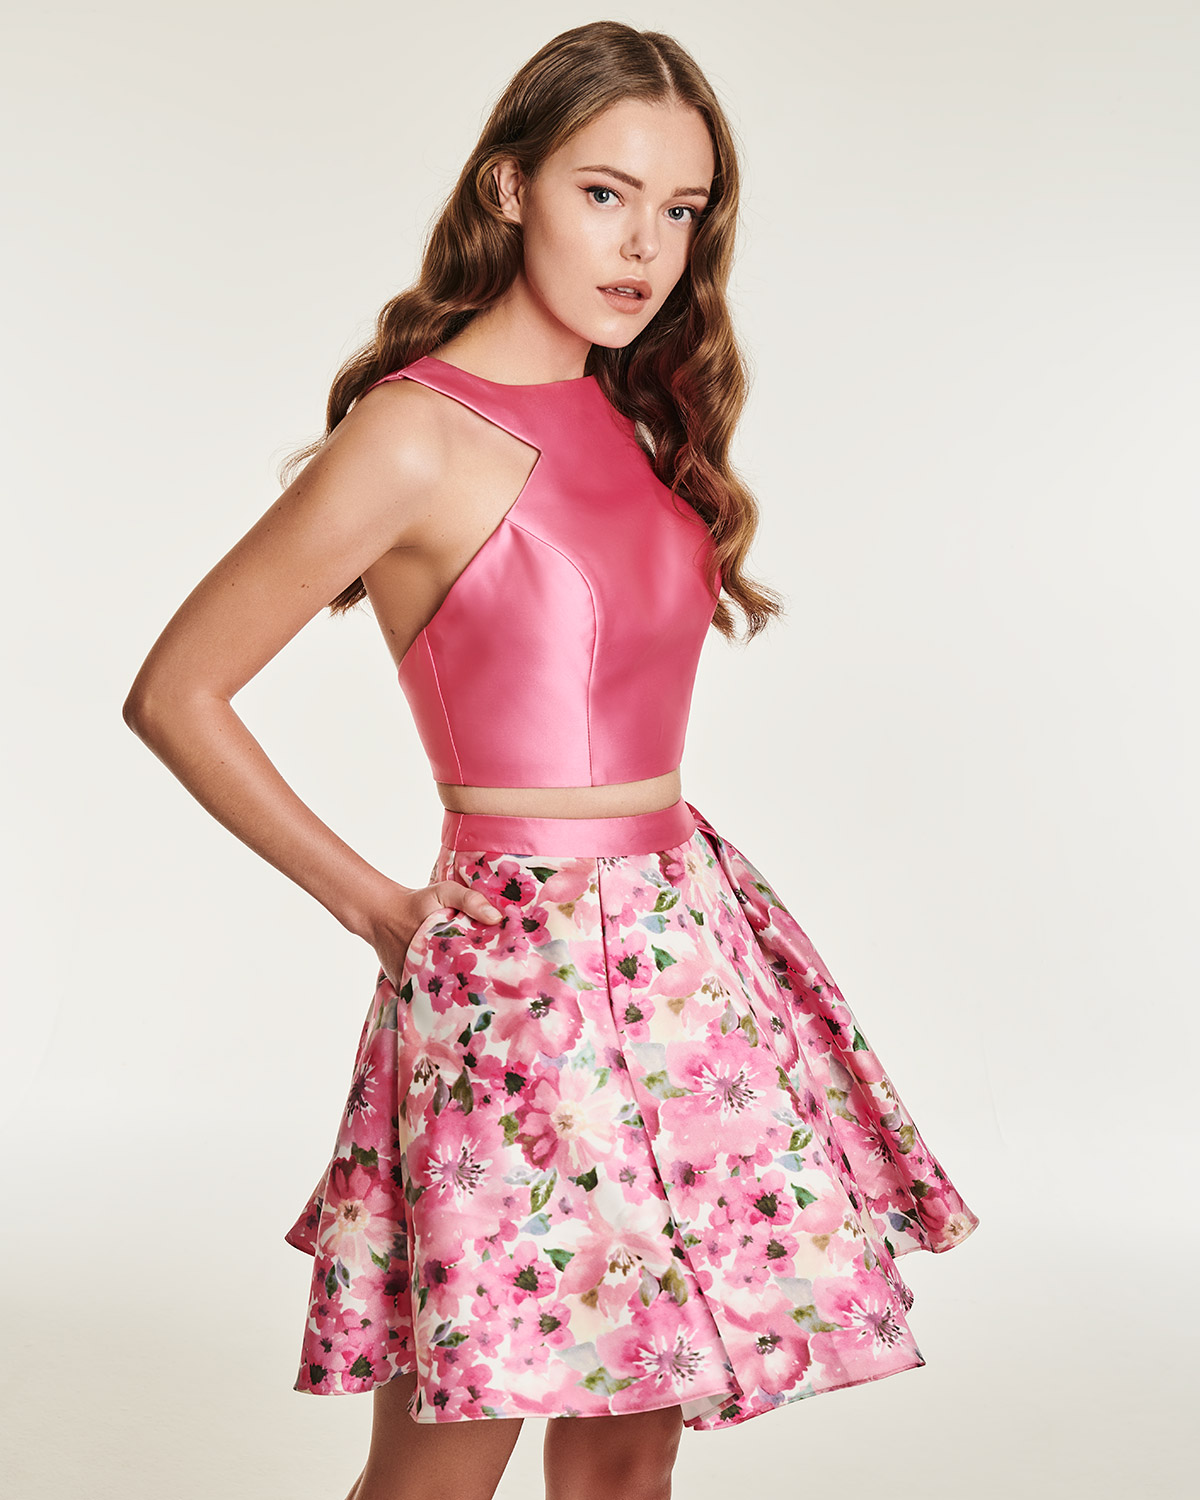 Cocktail Dresses / Short skirt with floral details and top